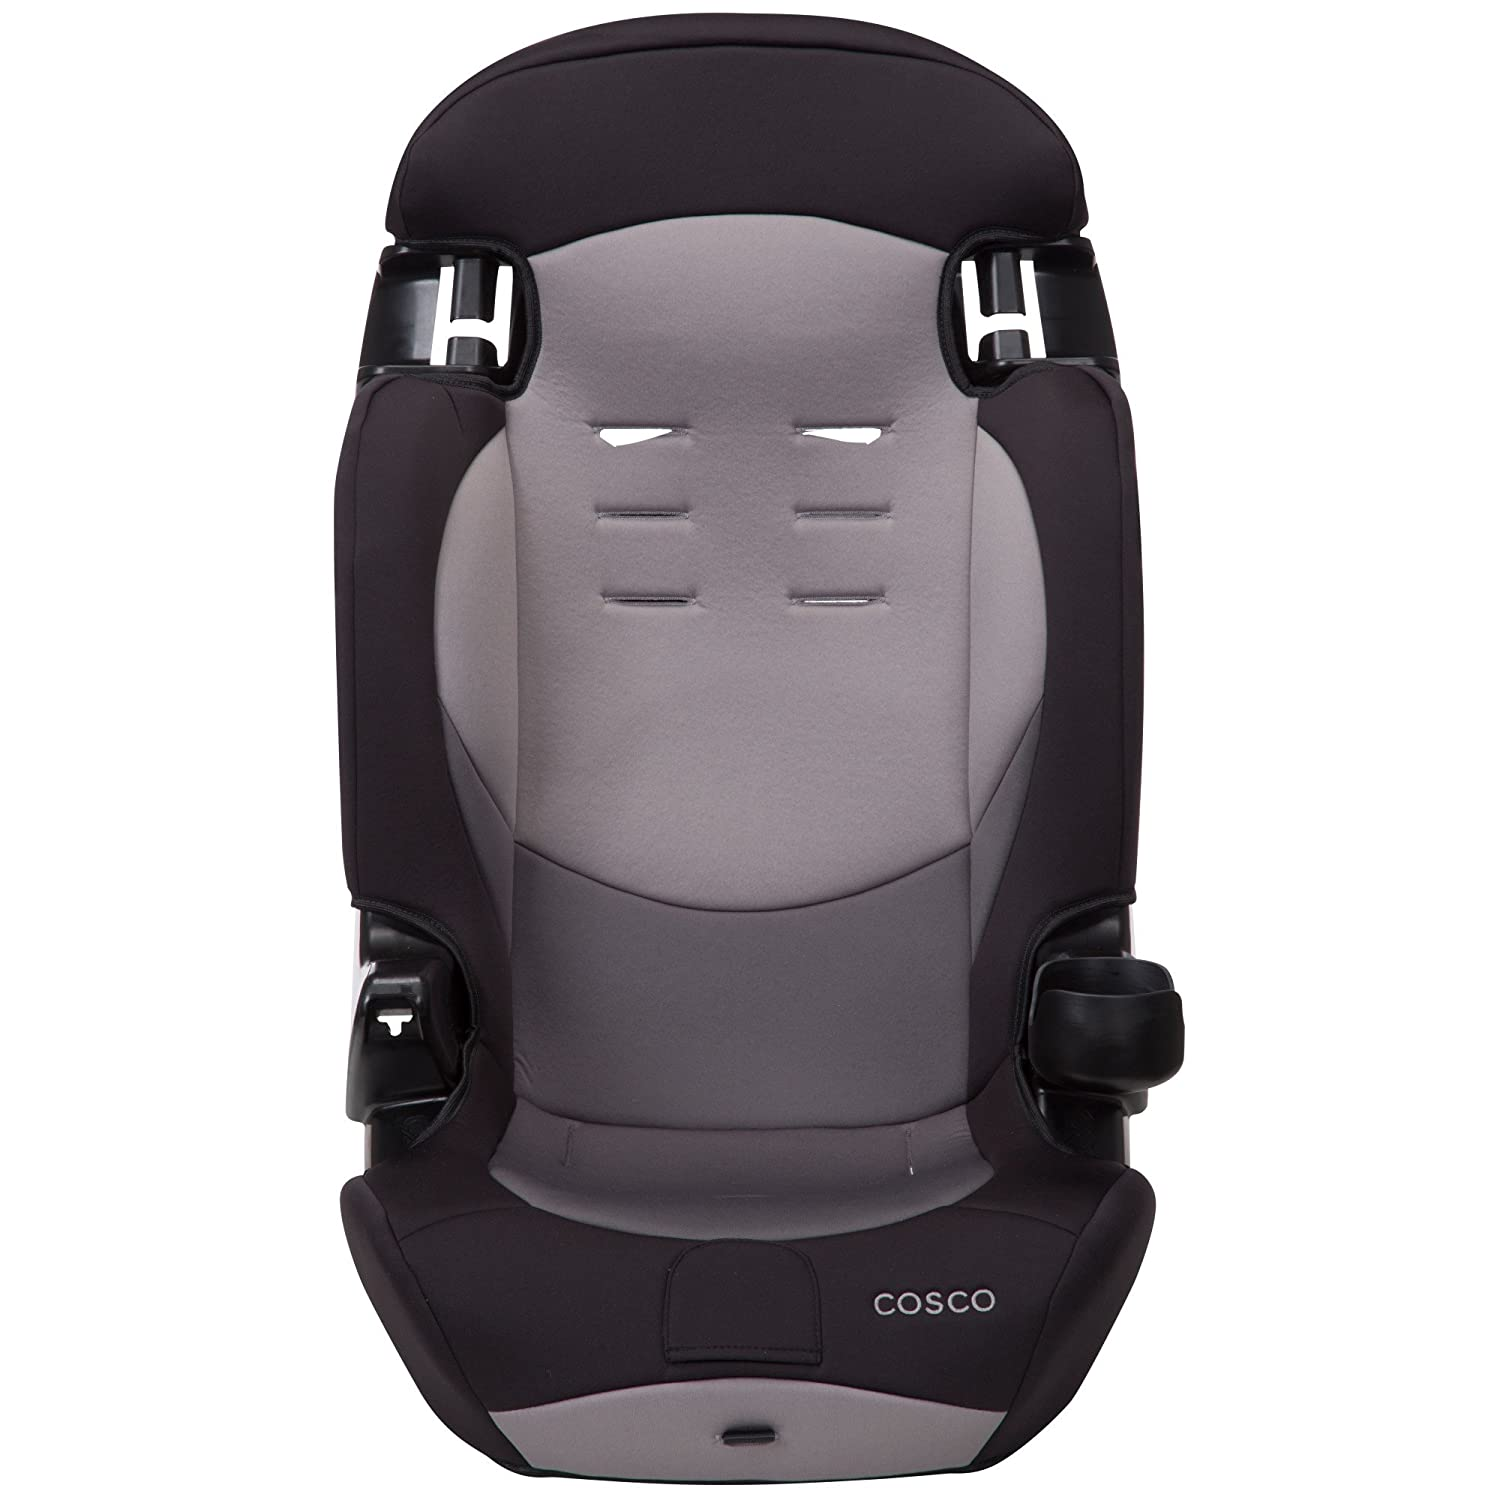 Cosco Finale DX 2 In 1 Booster Car Seat Under Budget Booster seat with 5 Point harness